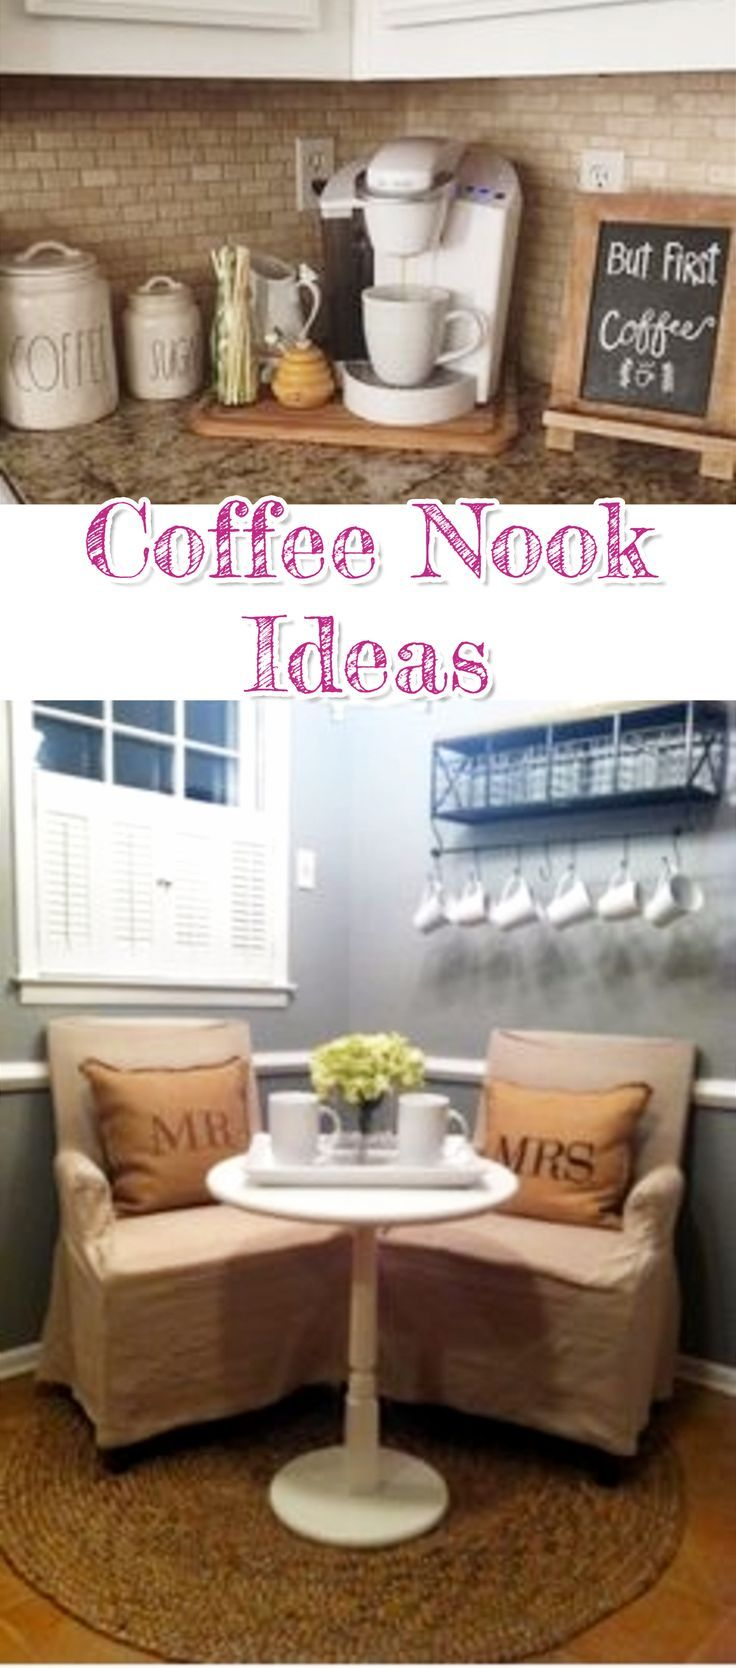 diy coffee bar ideas stunning farmhouse style beverage stations for small spaces and tiny. Black Bedroom Furniture Sets. Home Design Ideas